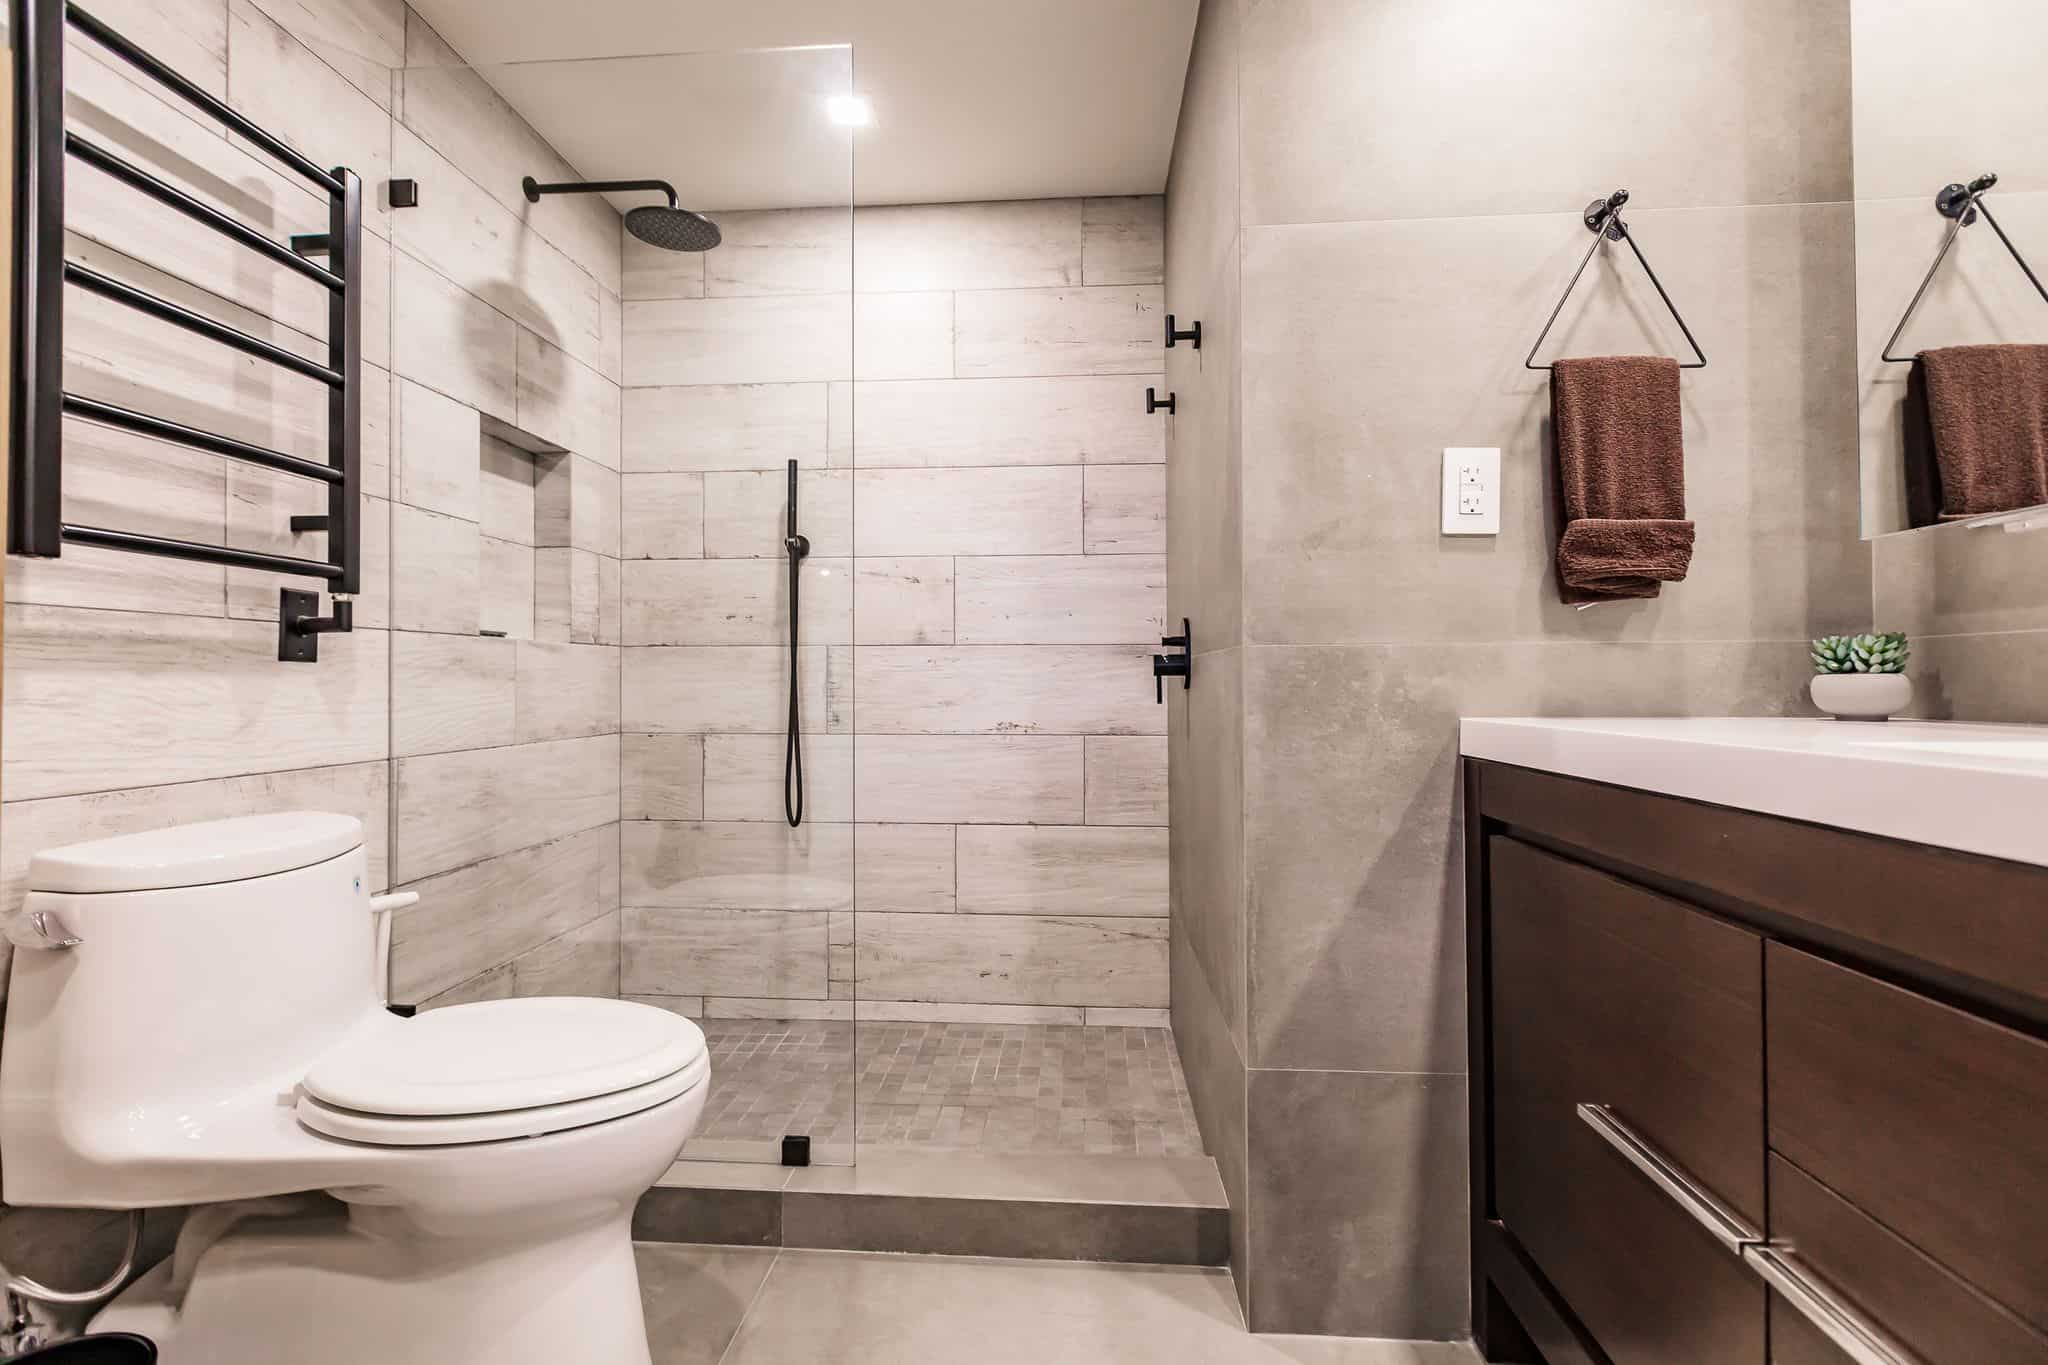 Condo Remodeling in South Miami with Master Bathroom